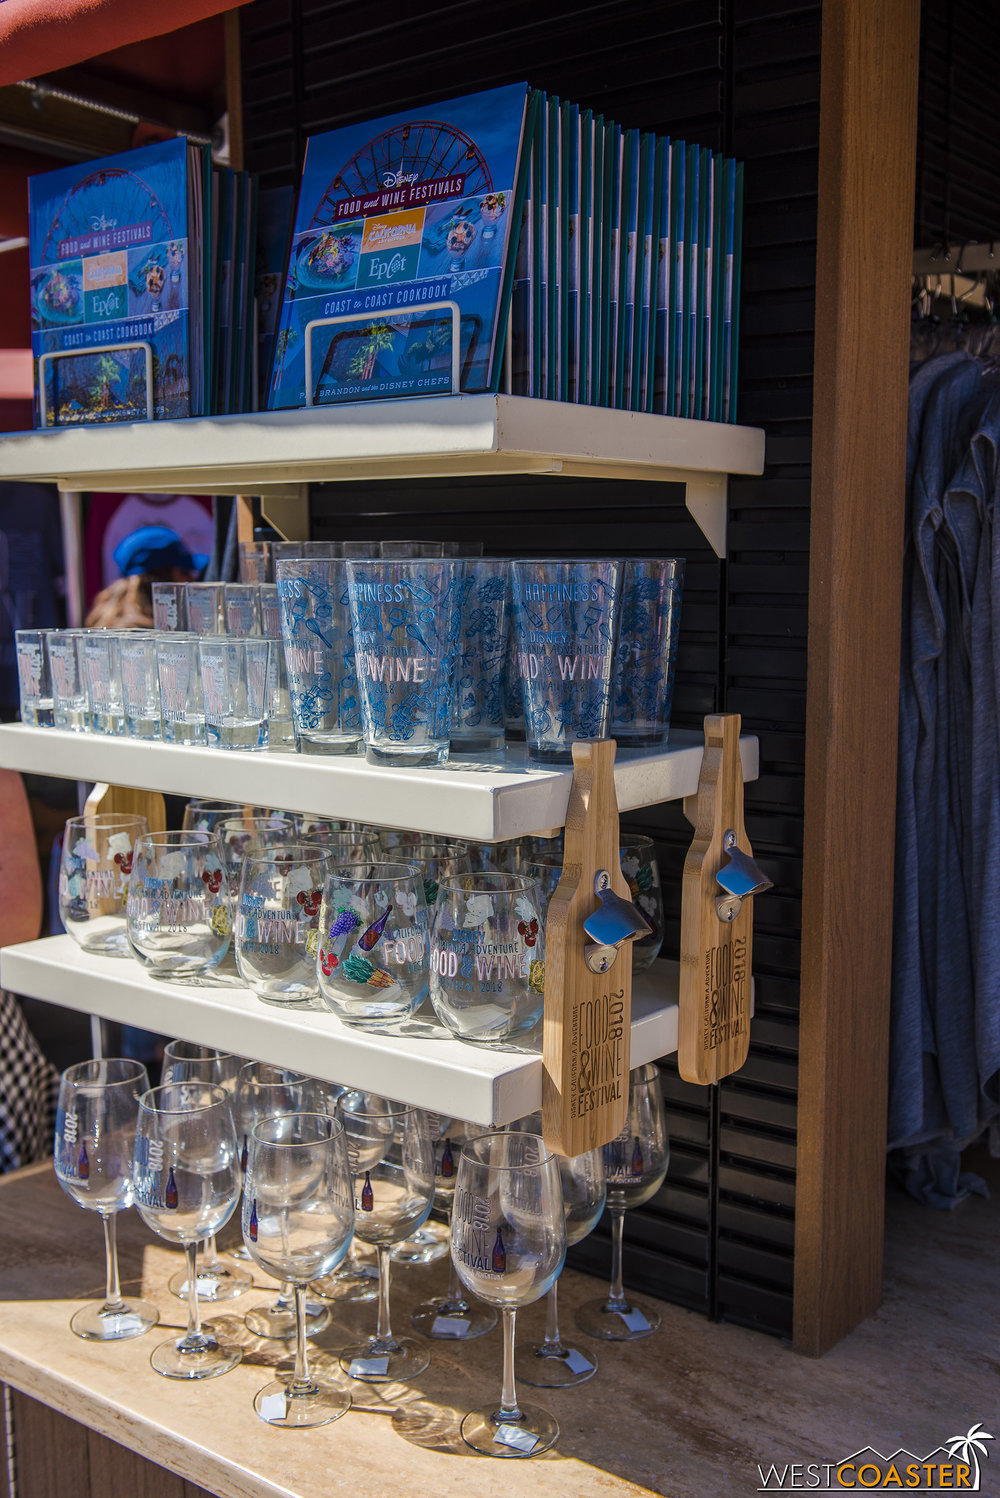 More Food & Wine merchandise along the Parade Corridor.